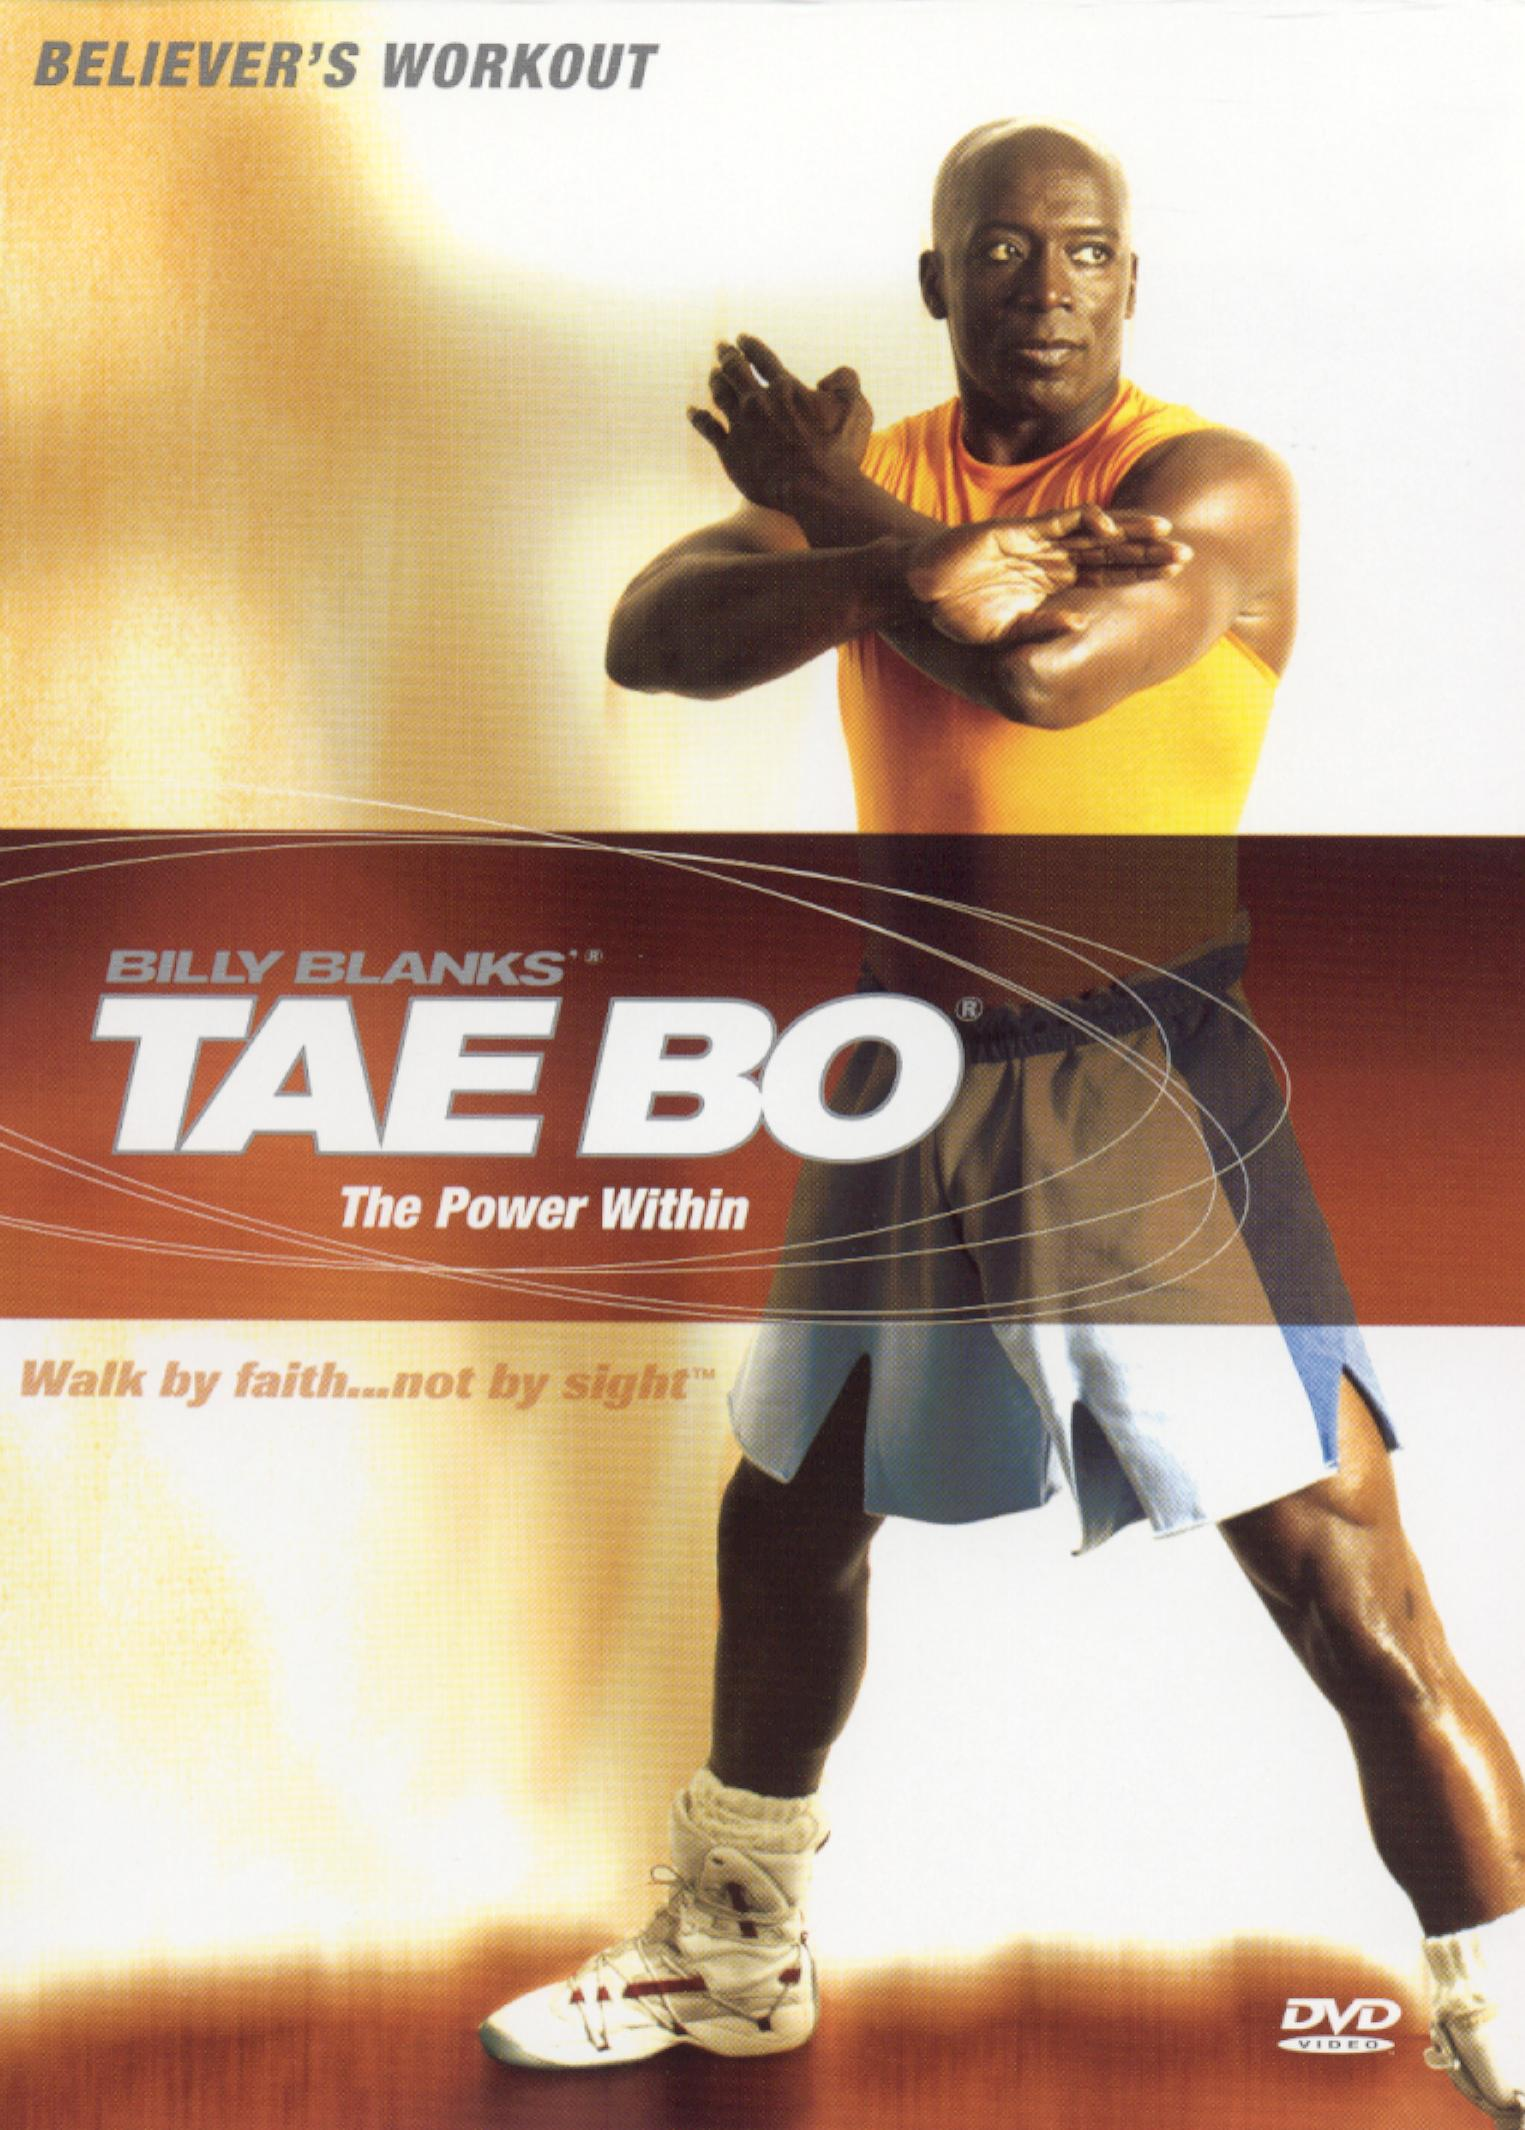 Billy Blanks: Tae Bo Believers' Workout - The Power Within